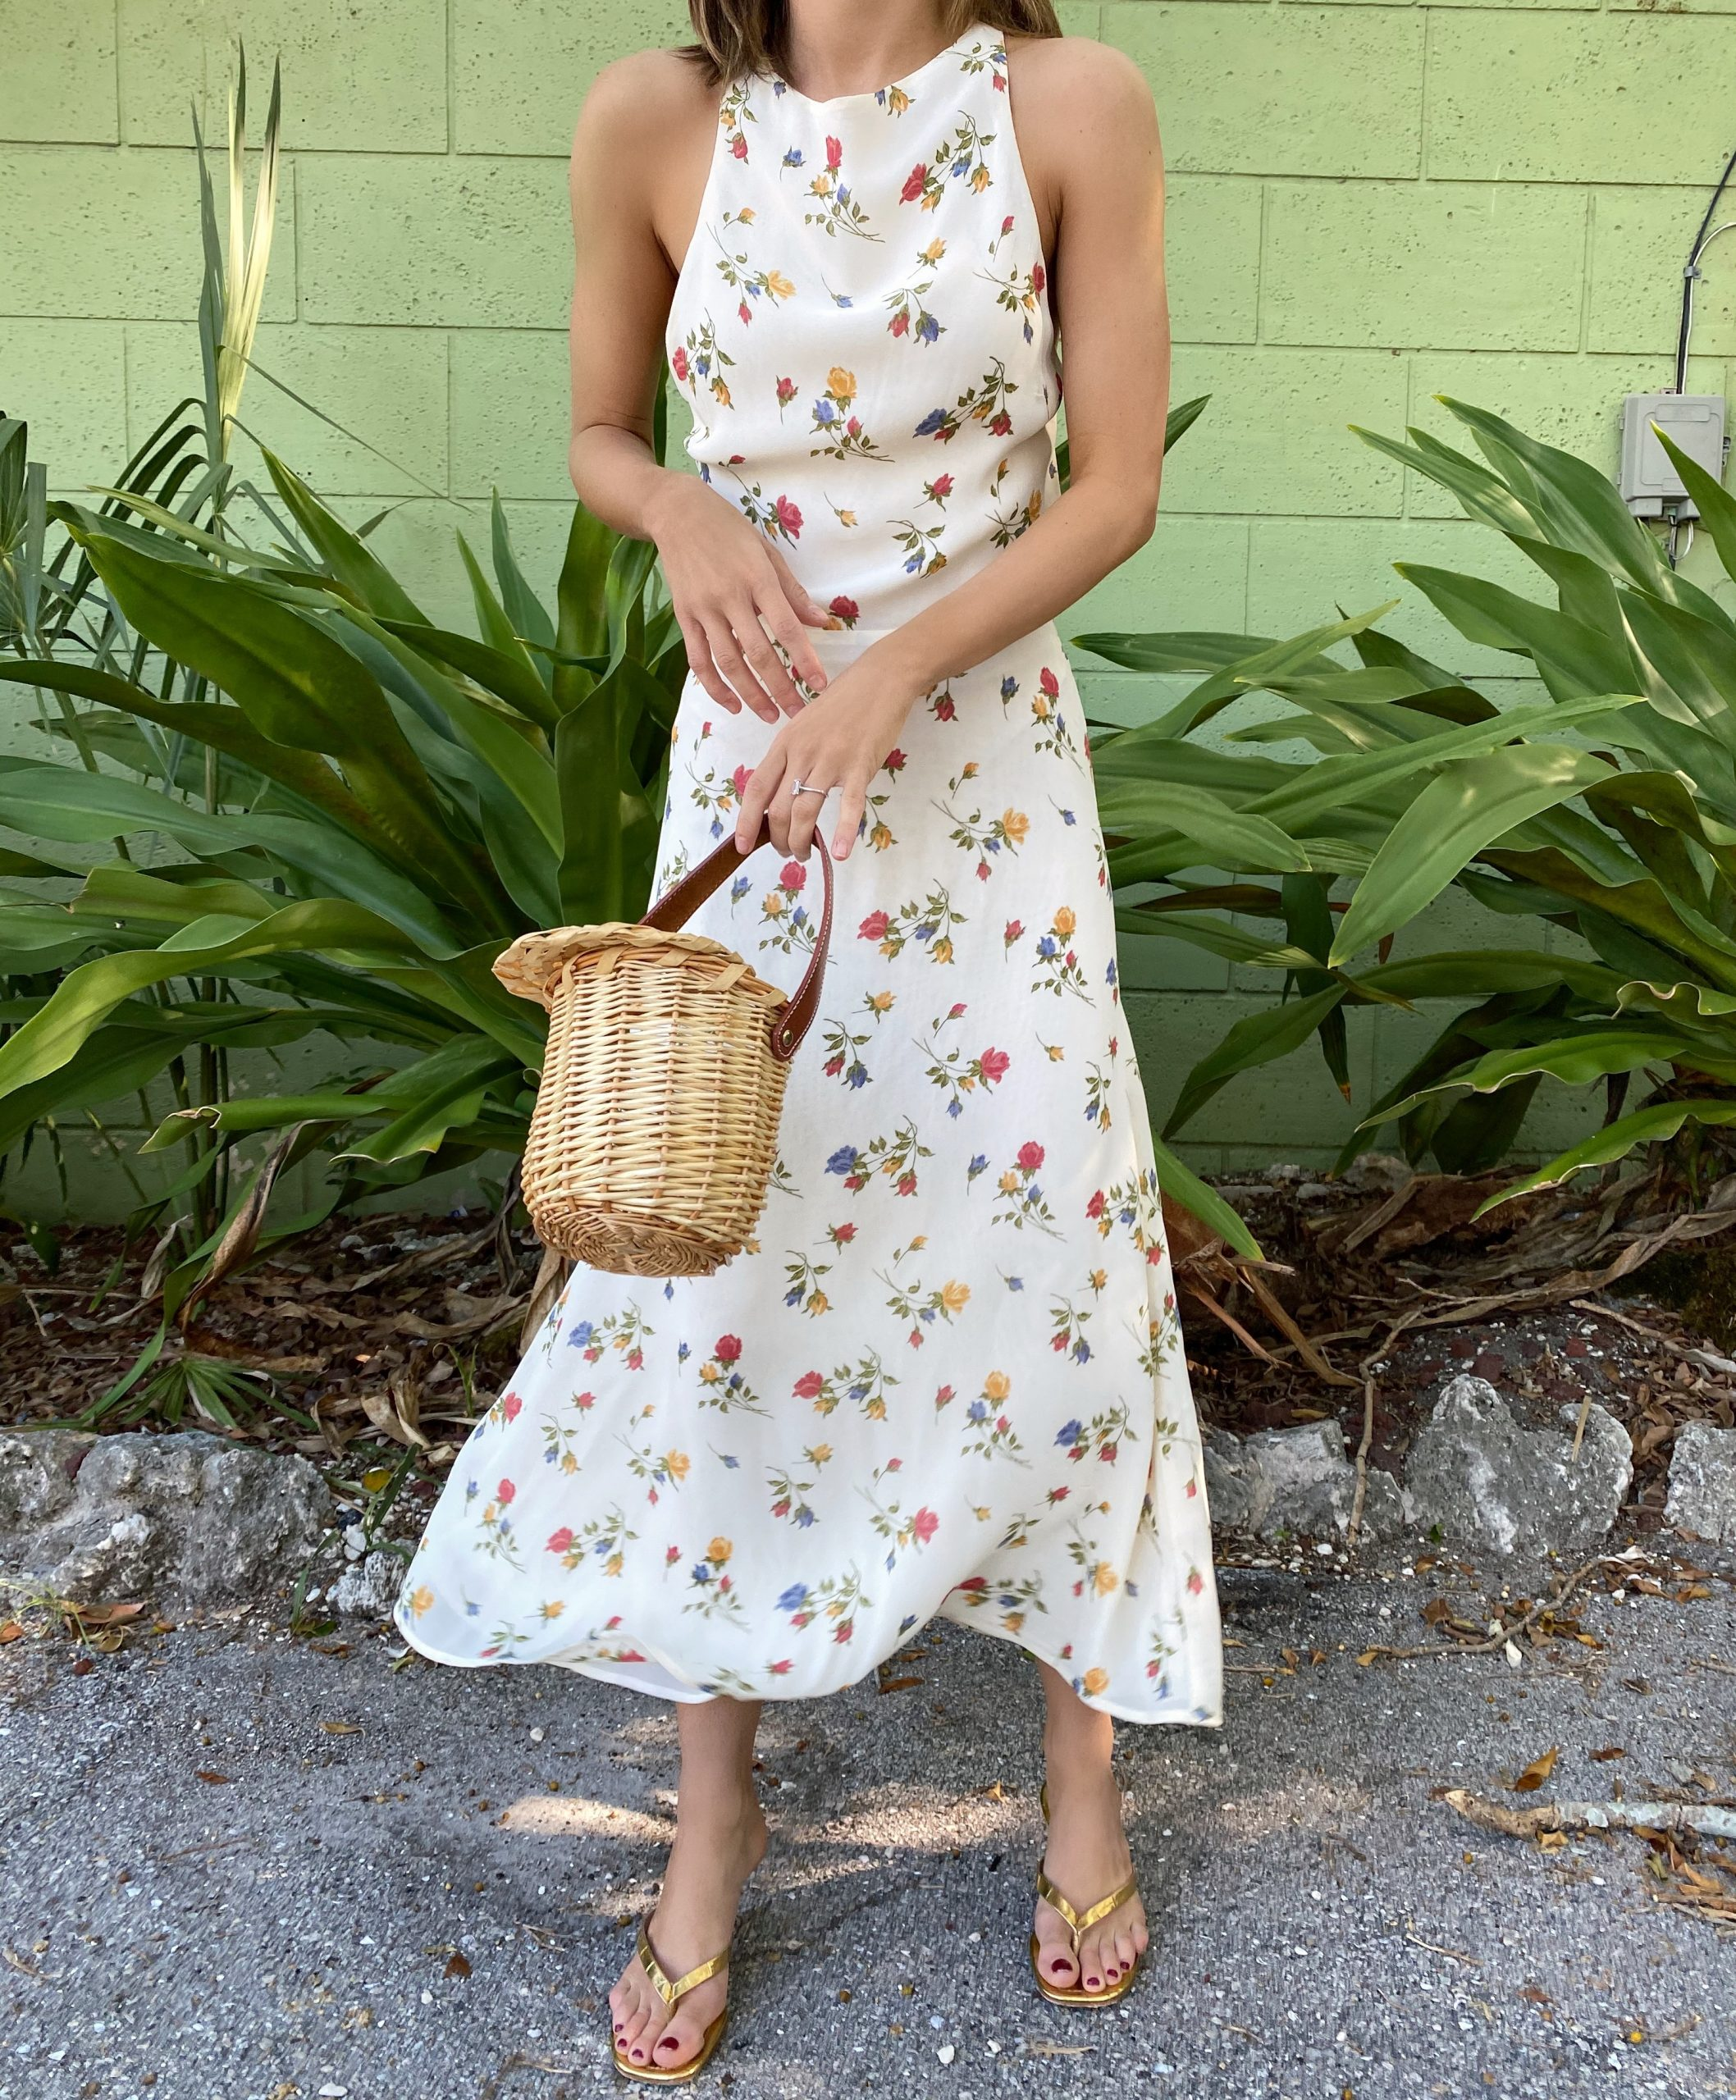 Fashion Blogger Stephanie Hill wears #ootd featuring a Reformation dress on The Style Bungalow